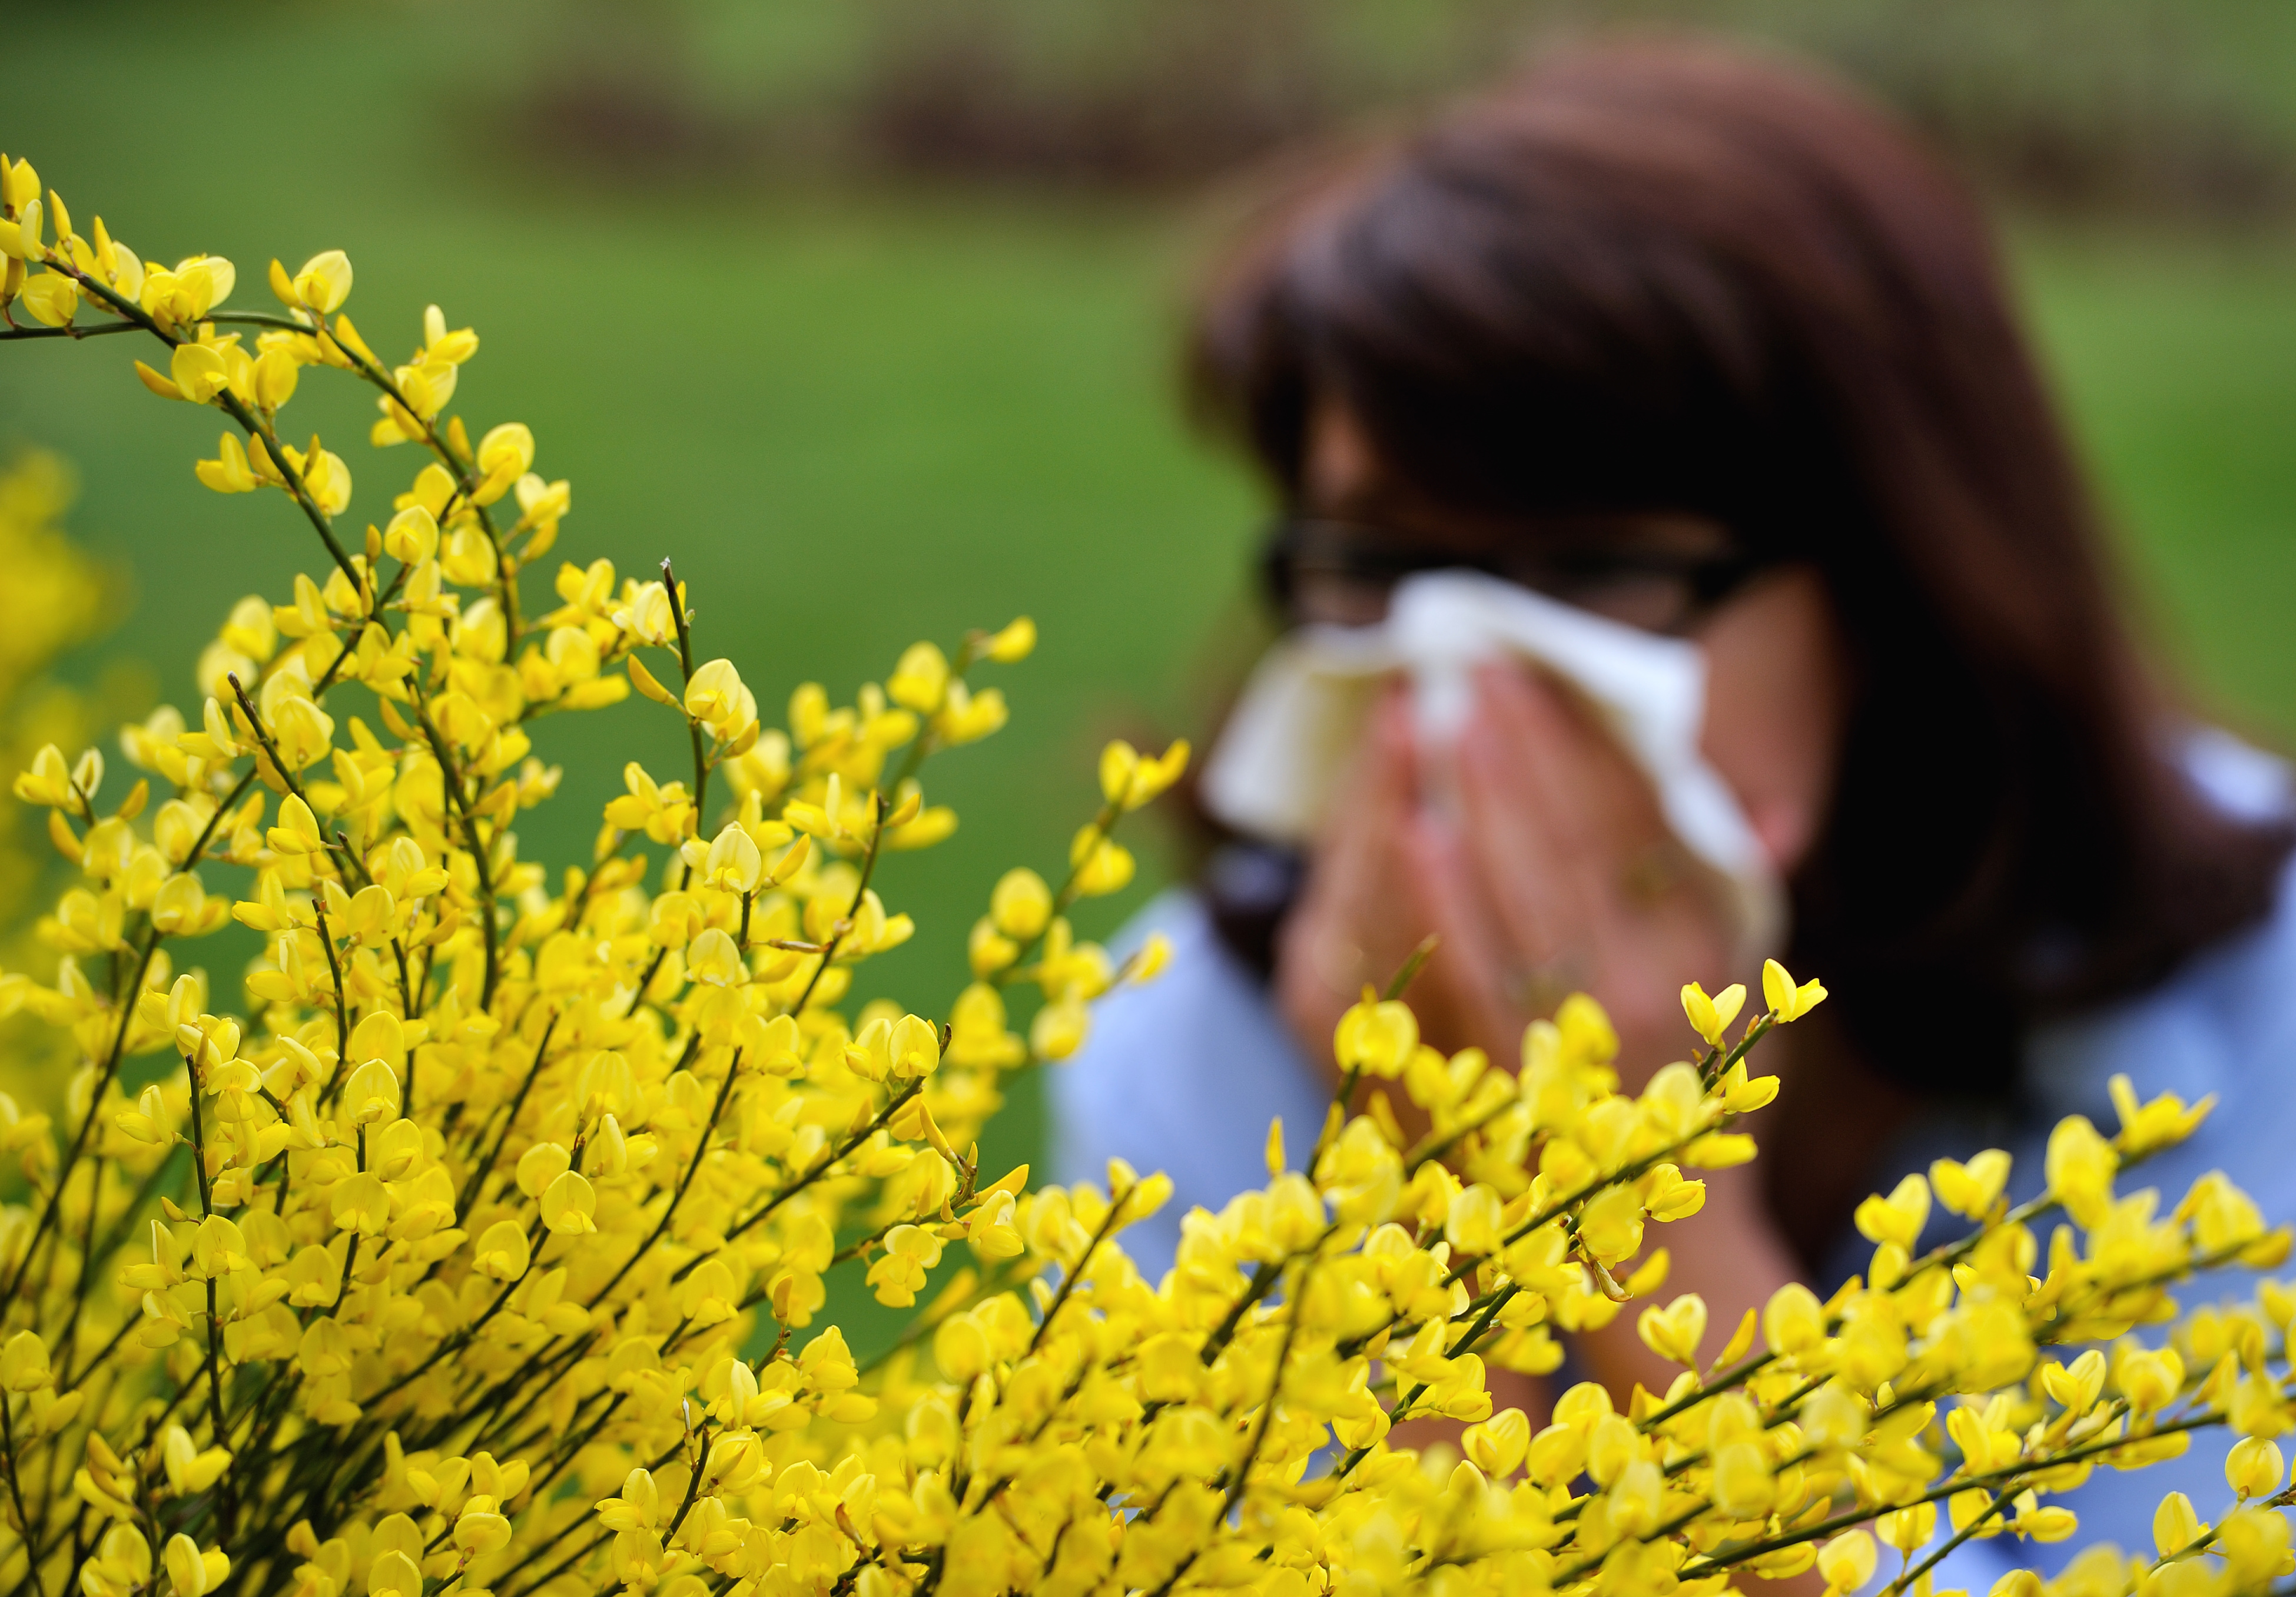 FRANCE-HEALTH-ALLERGIES-POLLEN